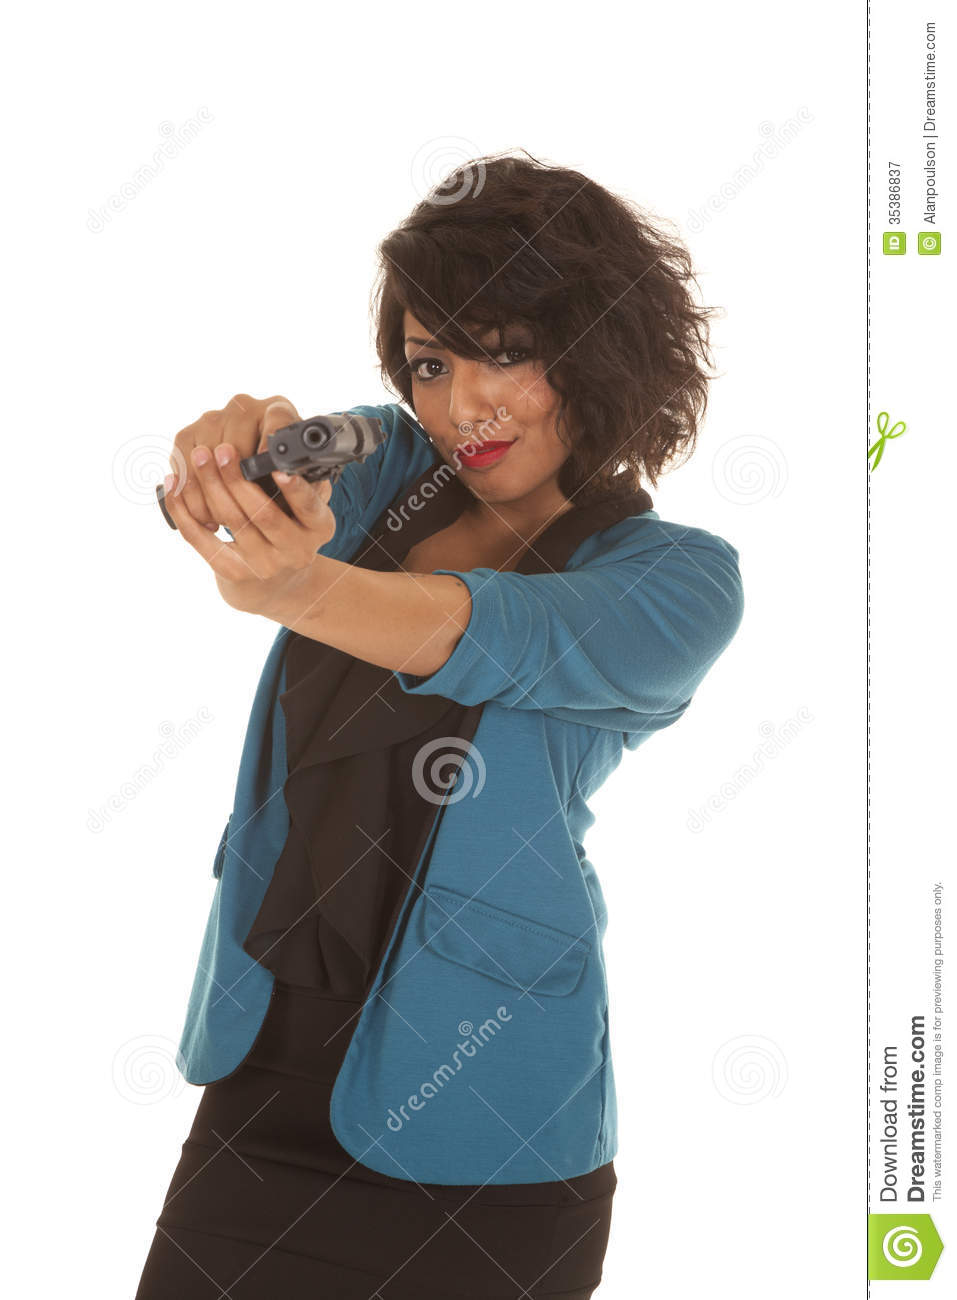 dc7185242 A Hispanic woman pointing her gun at the camera, showing some attitude.